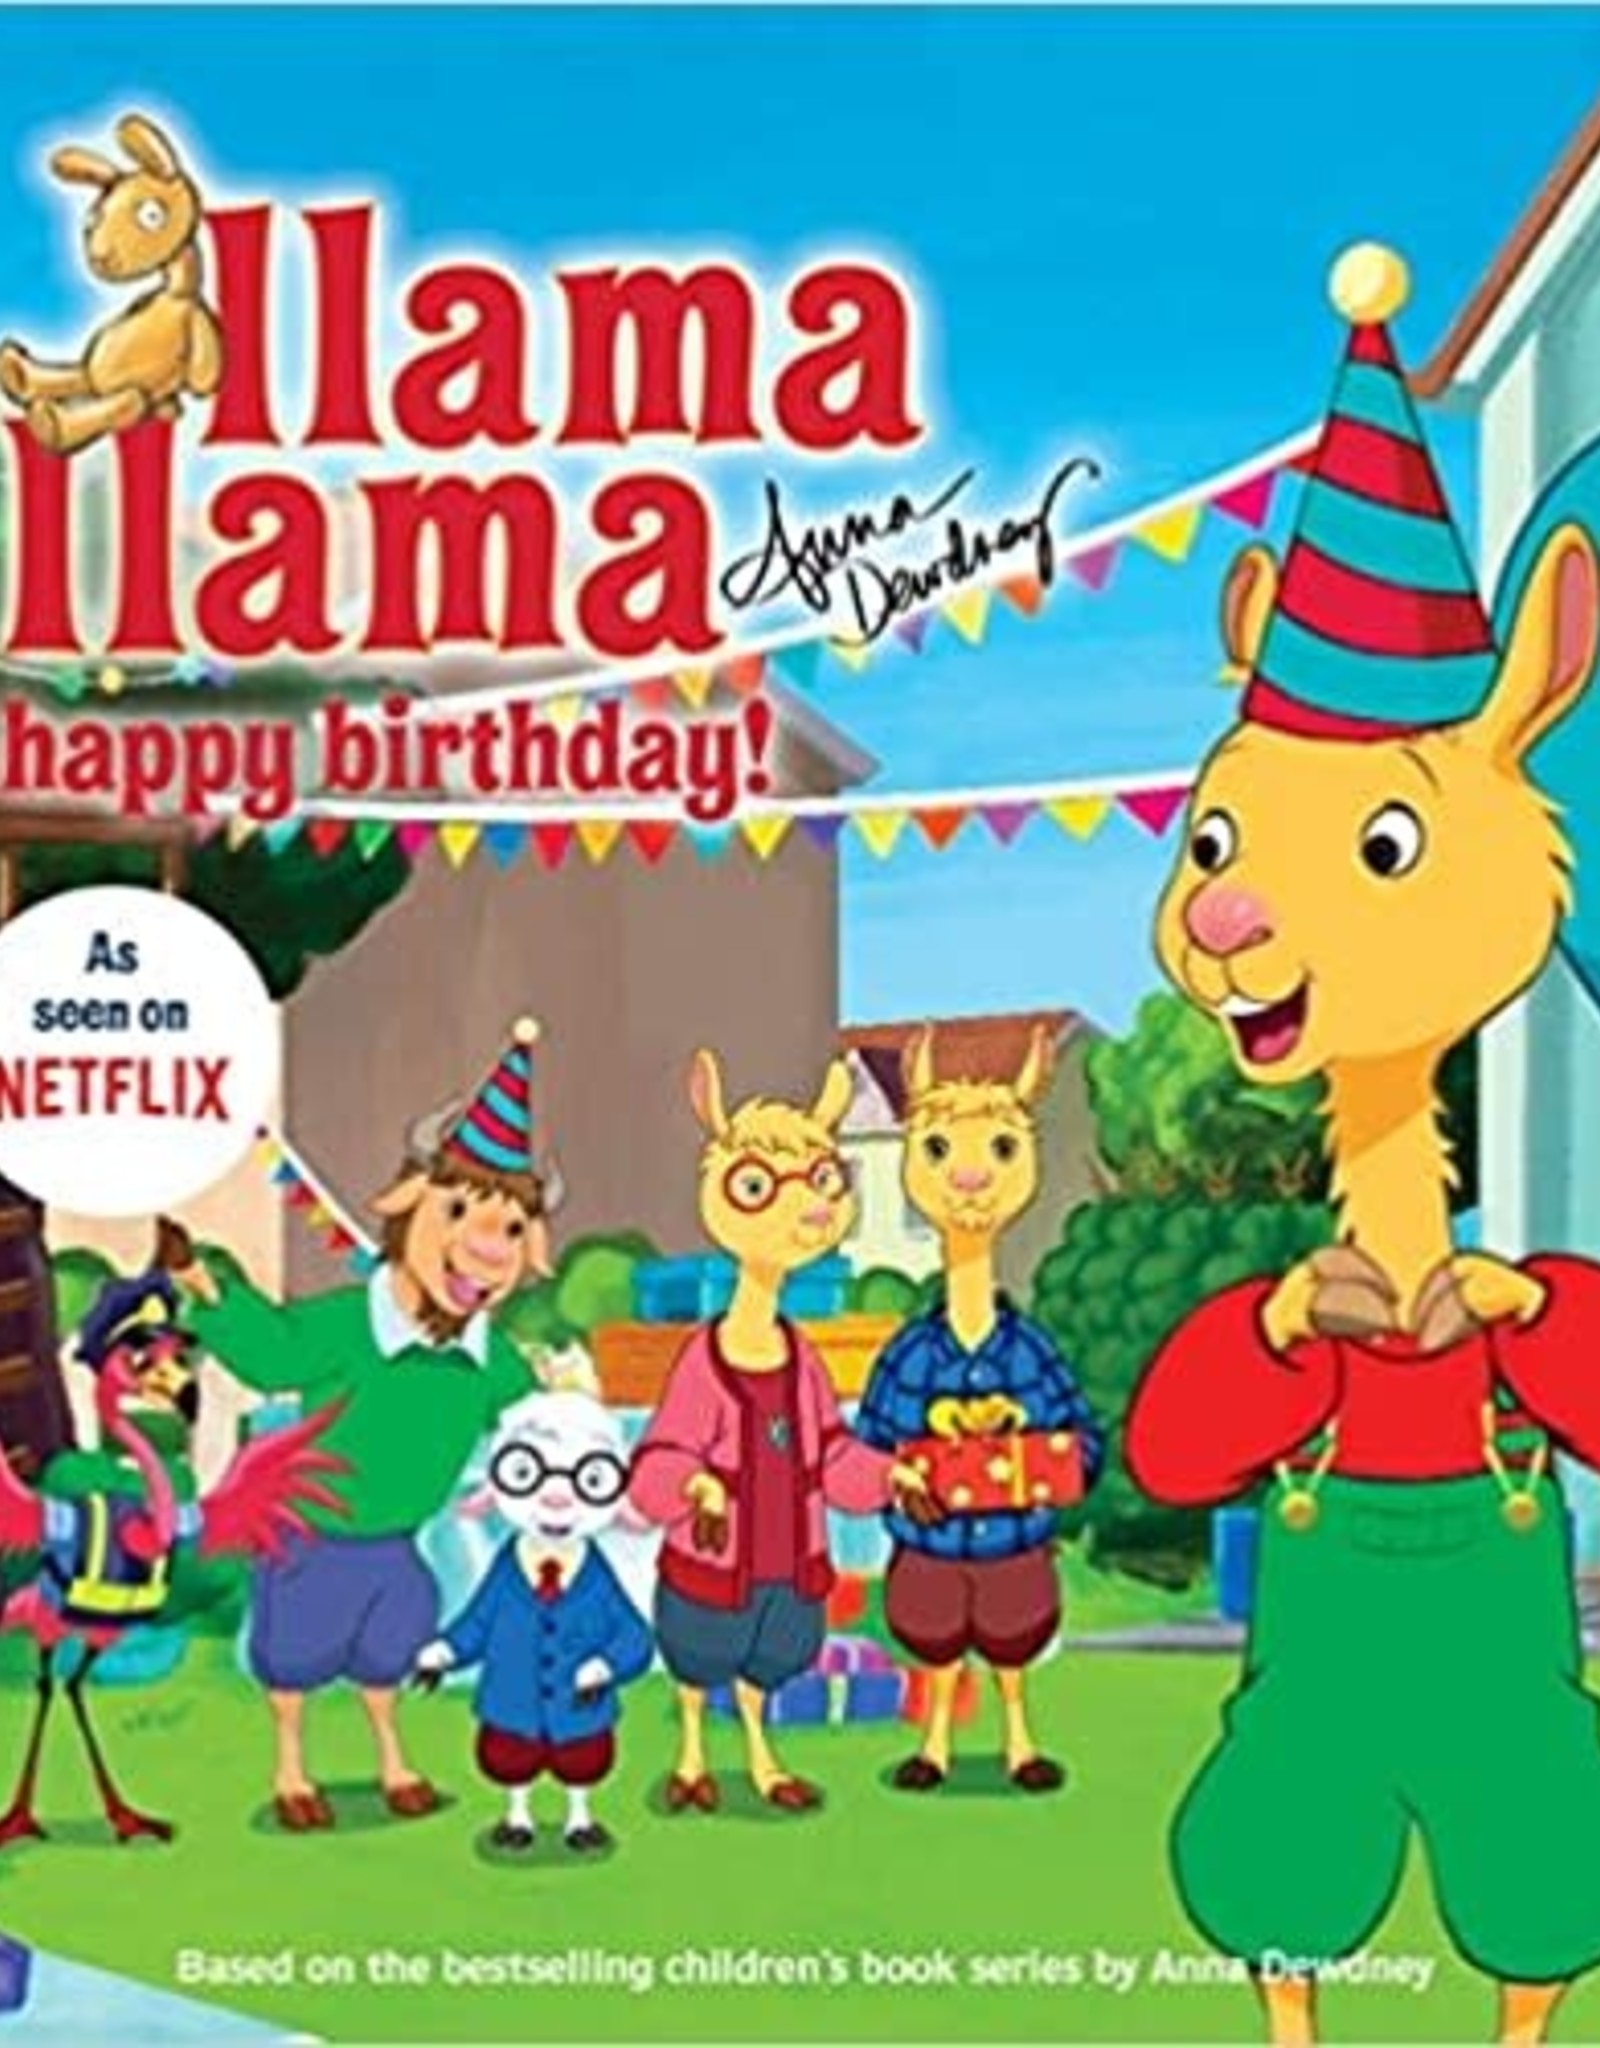 Penguin Random House Llama Llama Happy Birthday